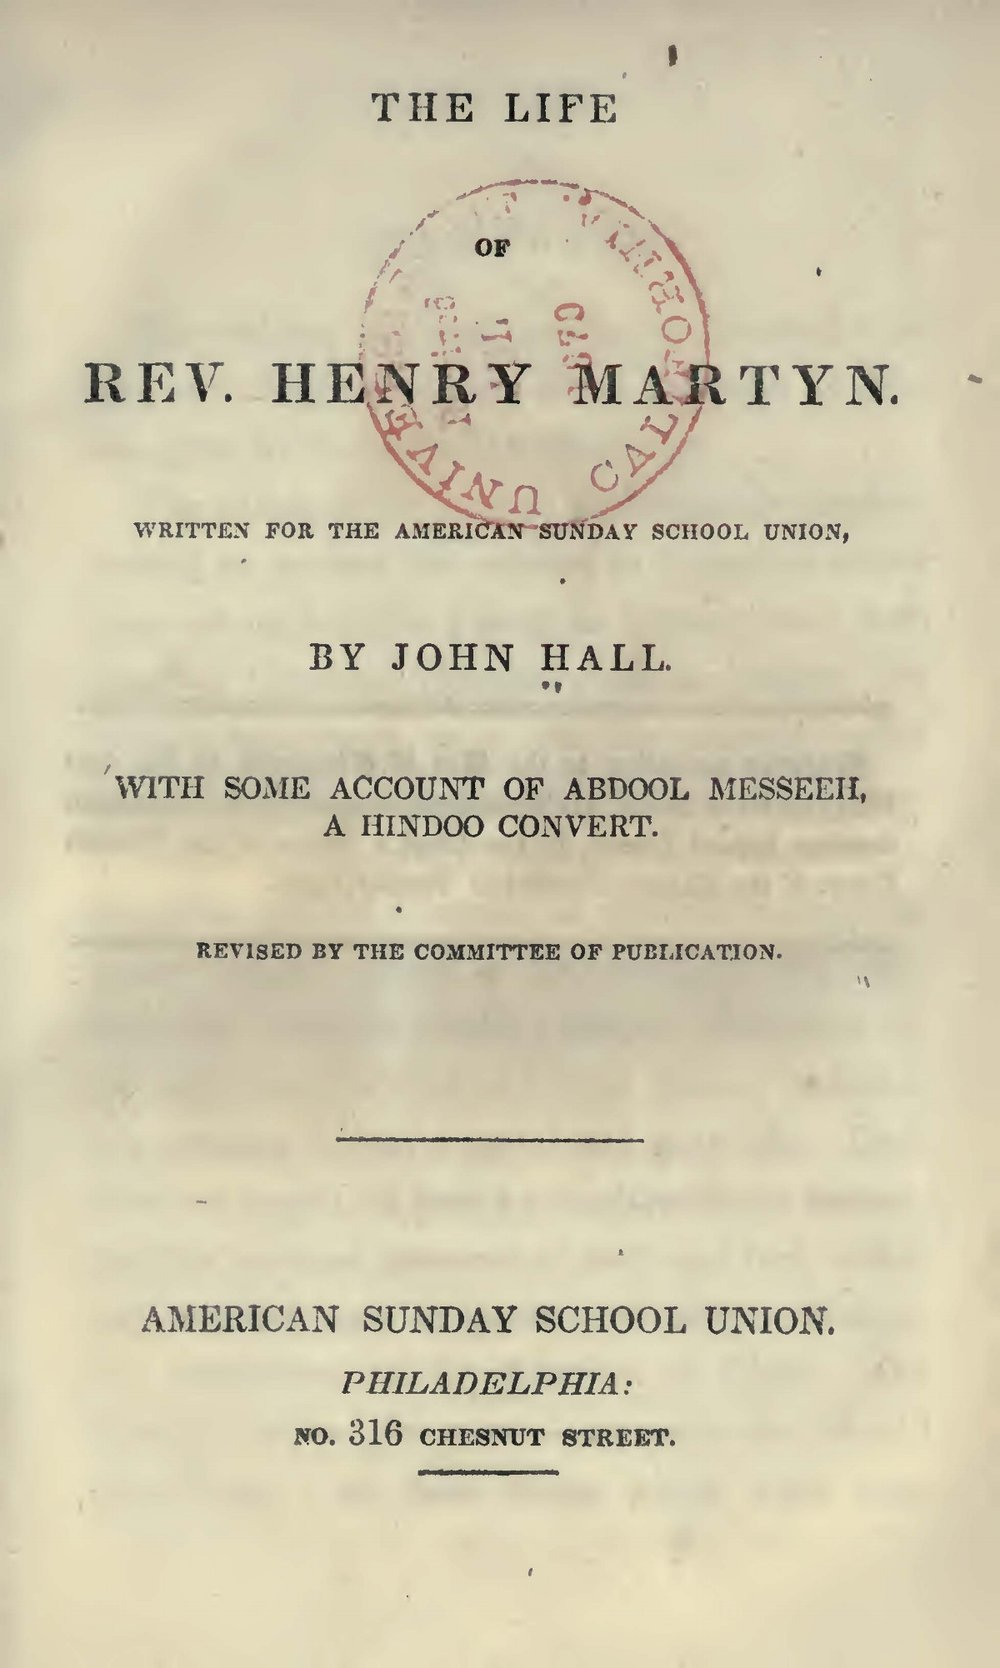 Hall, John, The Life of Rev. Henry Martyn Title Page.jpg